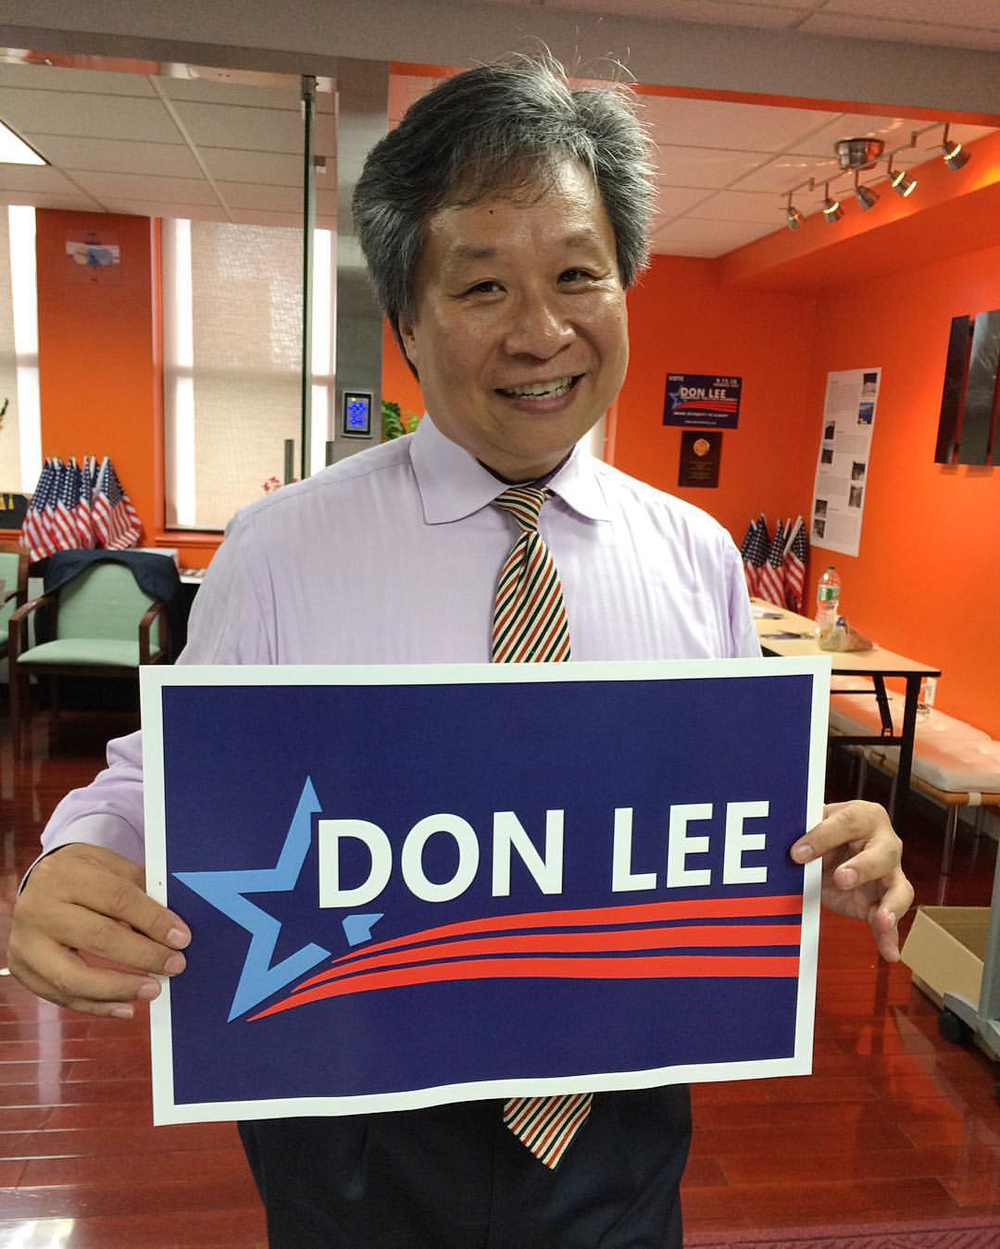 Copy of Don Lee